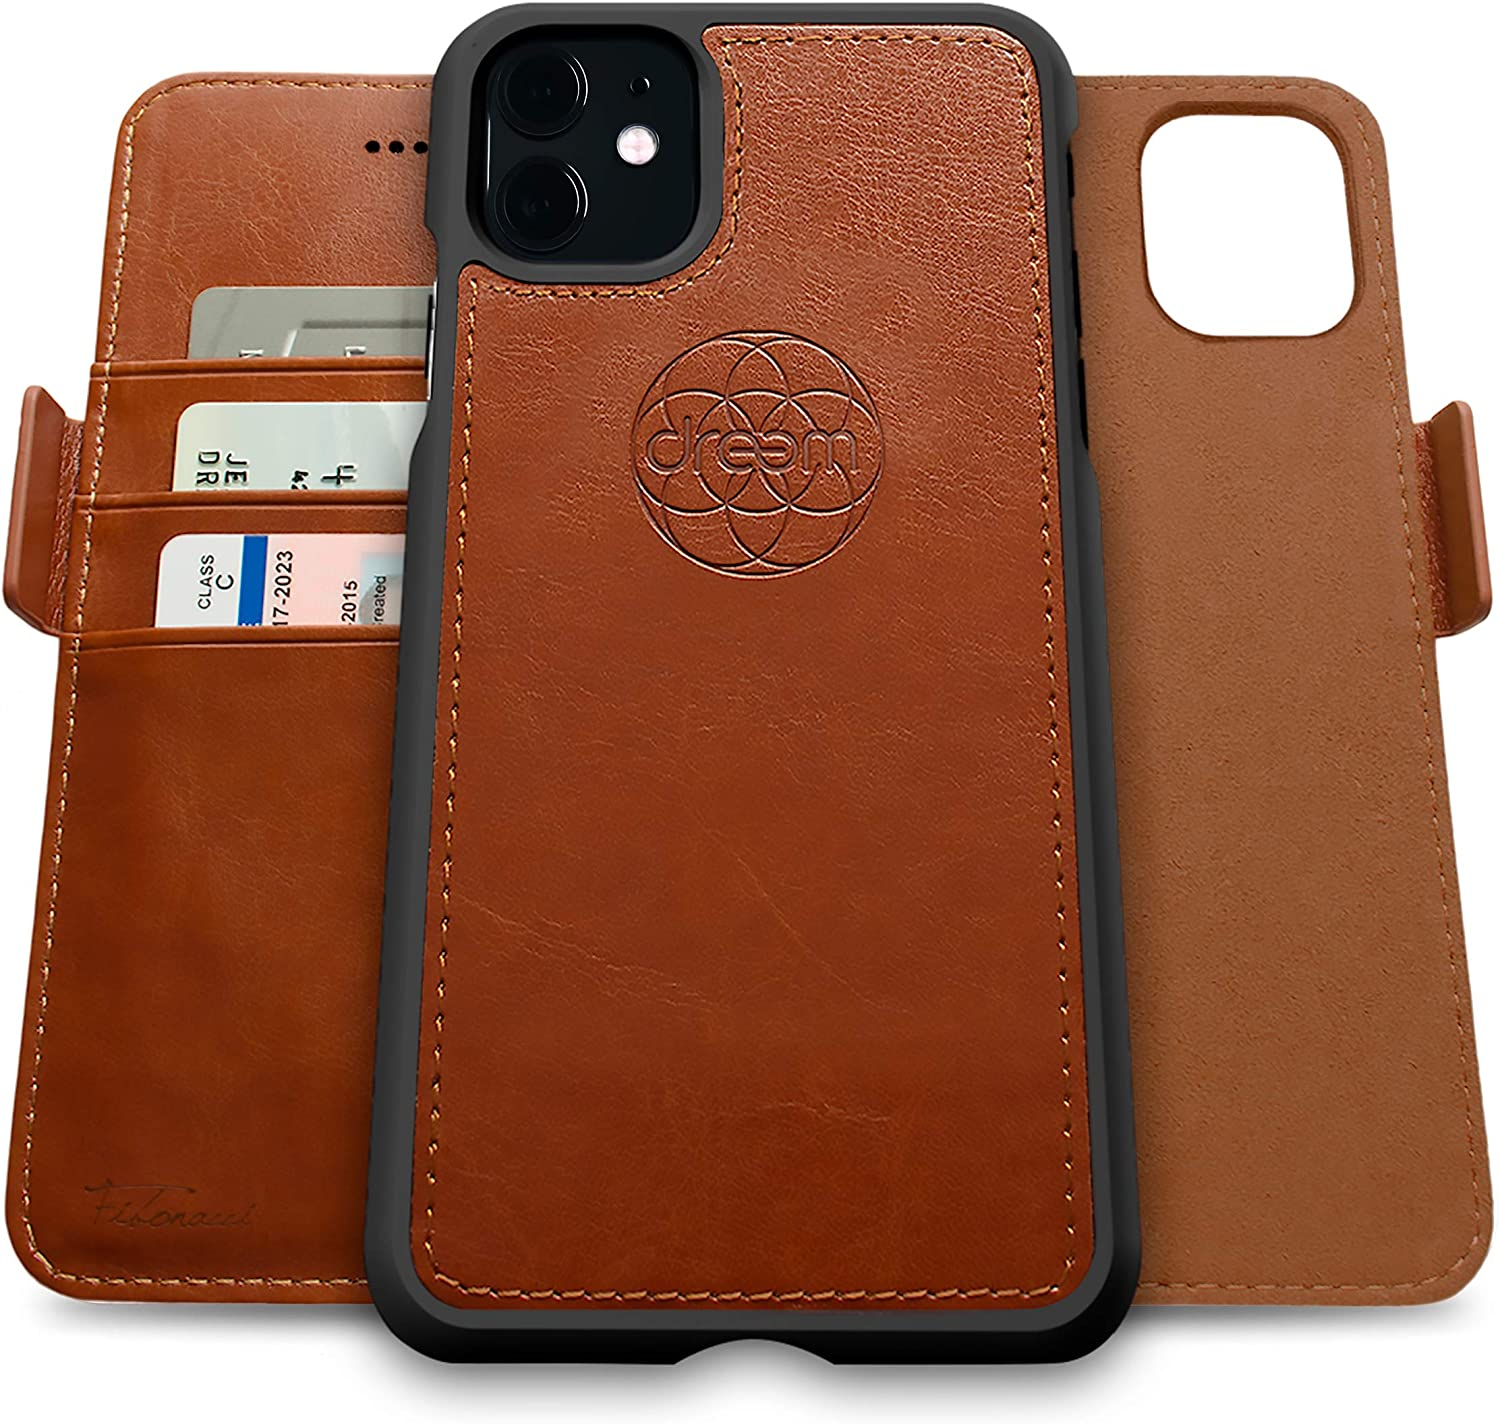 Dreem Fibonacci 2-in-1 Wallet-Case for Apple iPhone 11 - Luxury Vegan Leather, Magnetic Detachable Shockproof Phone Case, RFID Card Protection, 2-Way Flip Stand - Caramel